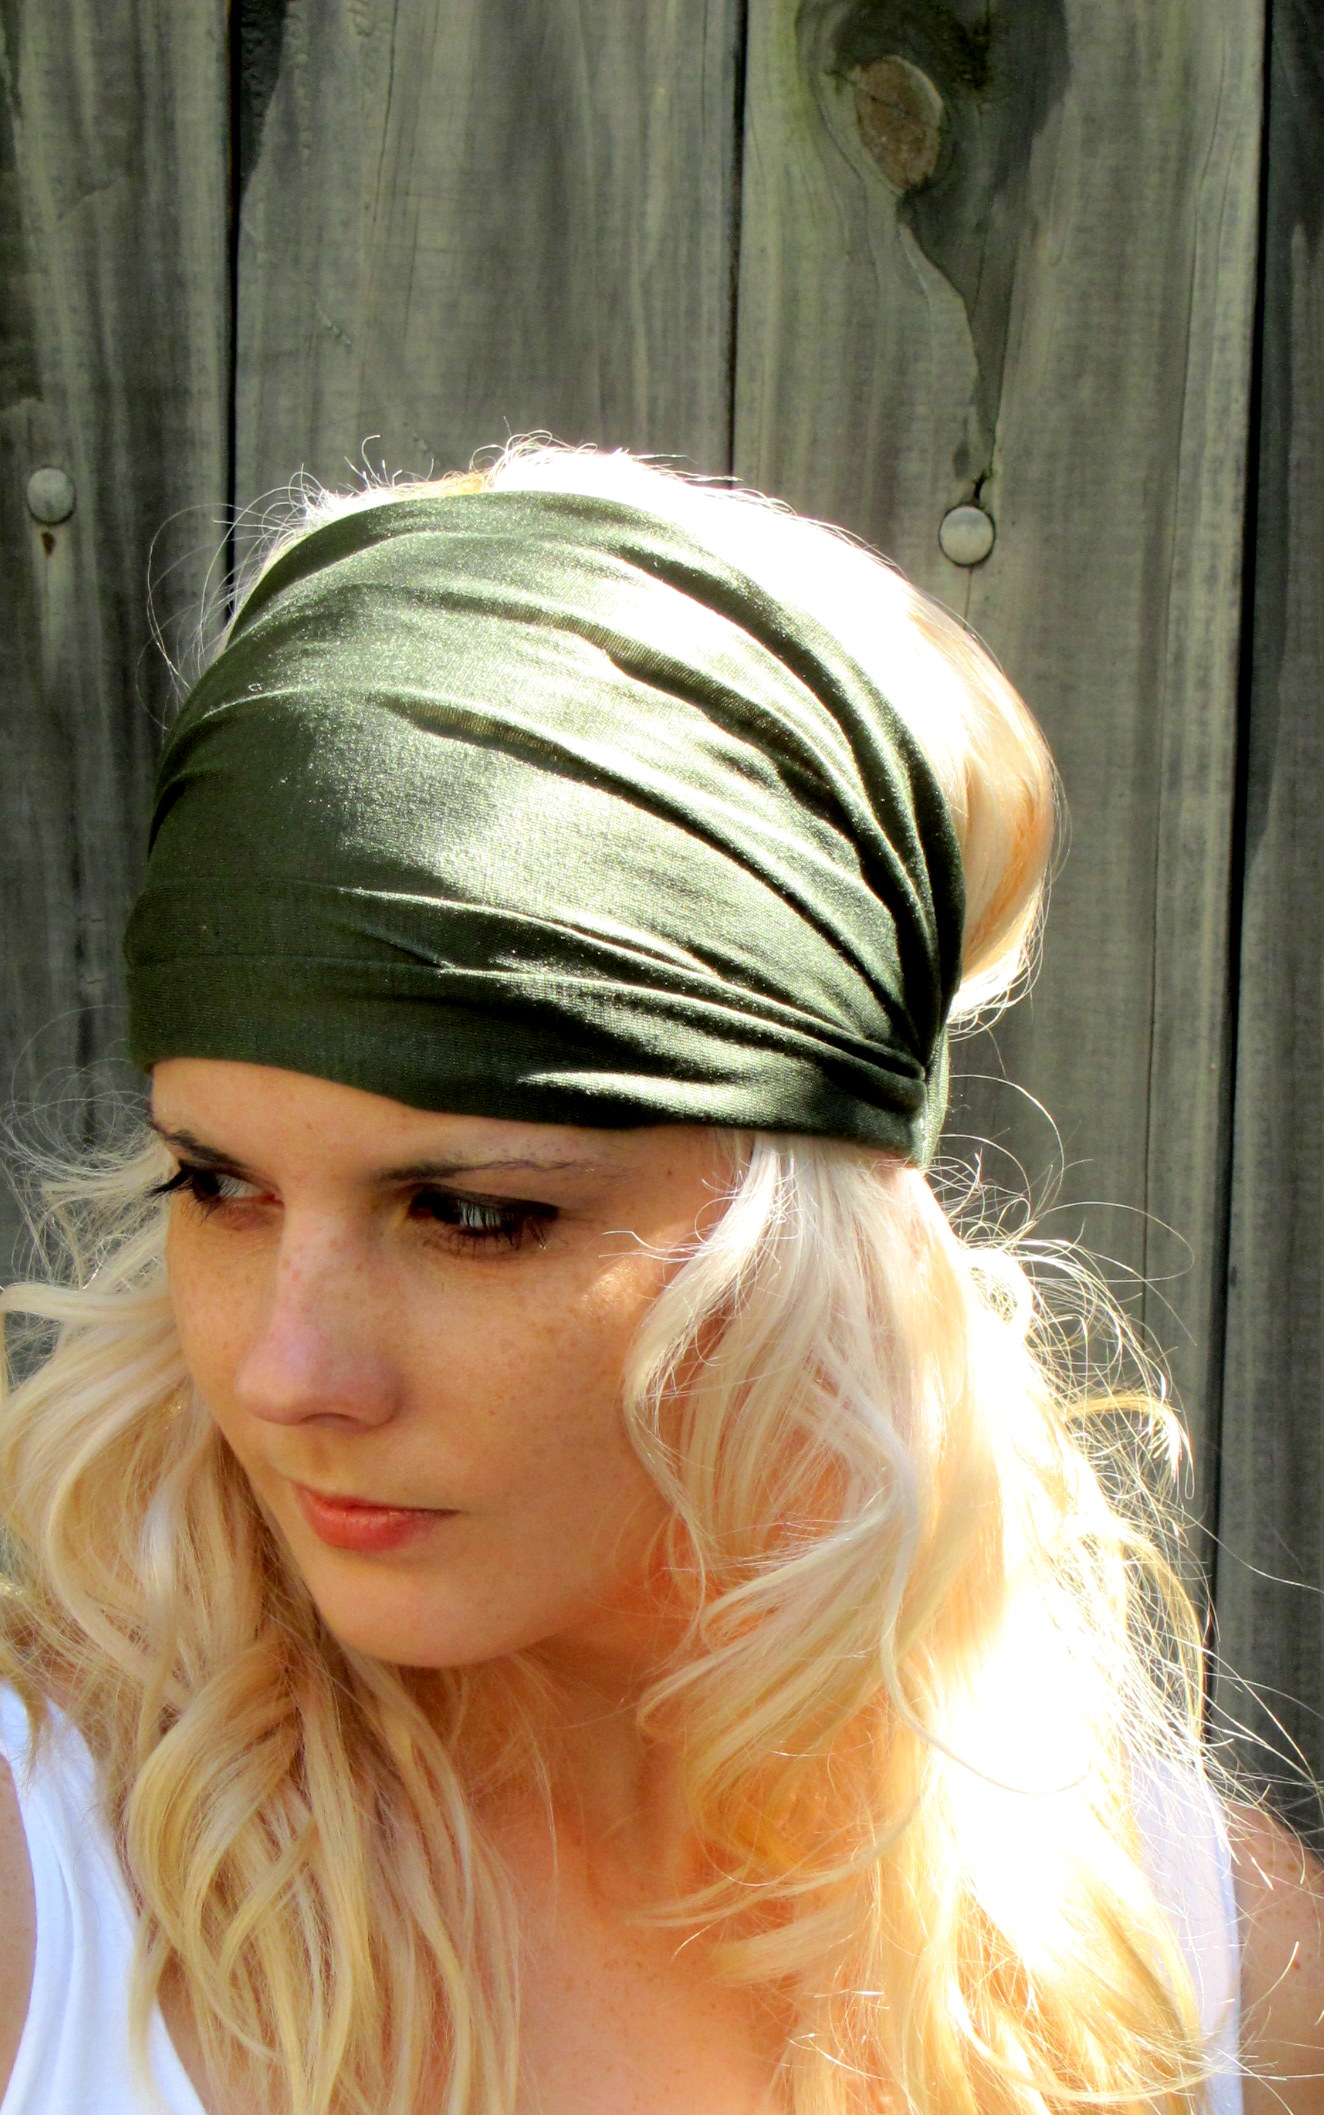 Cotton Stretchy Jersey Yoga Headband Wide Women s Turban Headband 7abee3687ce